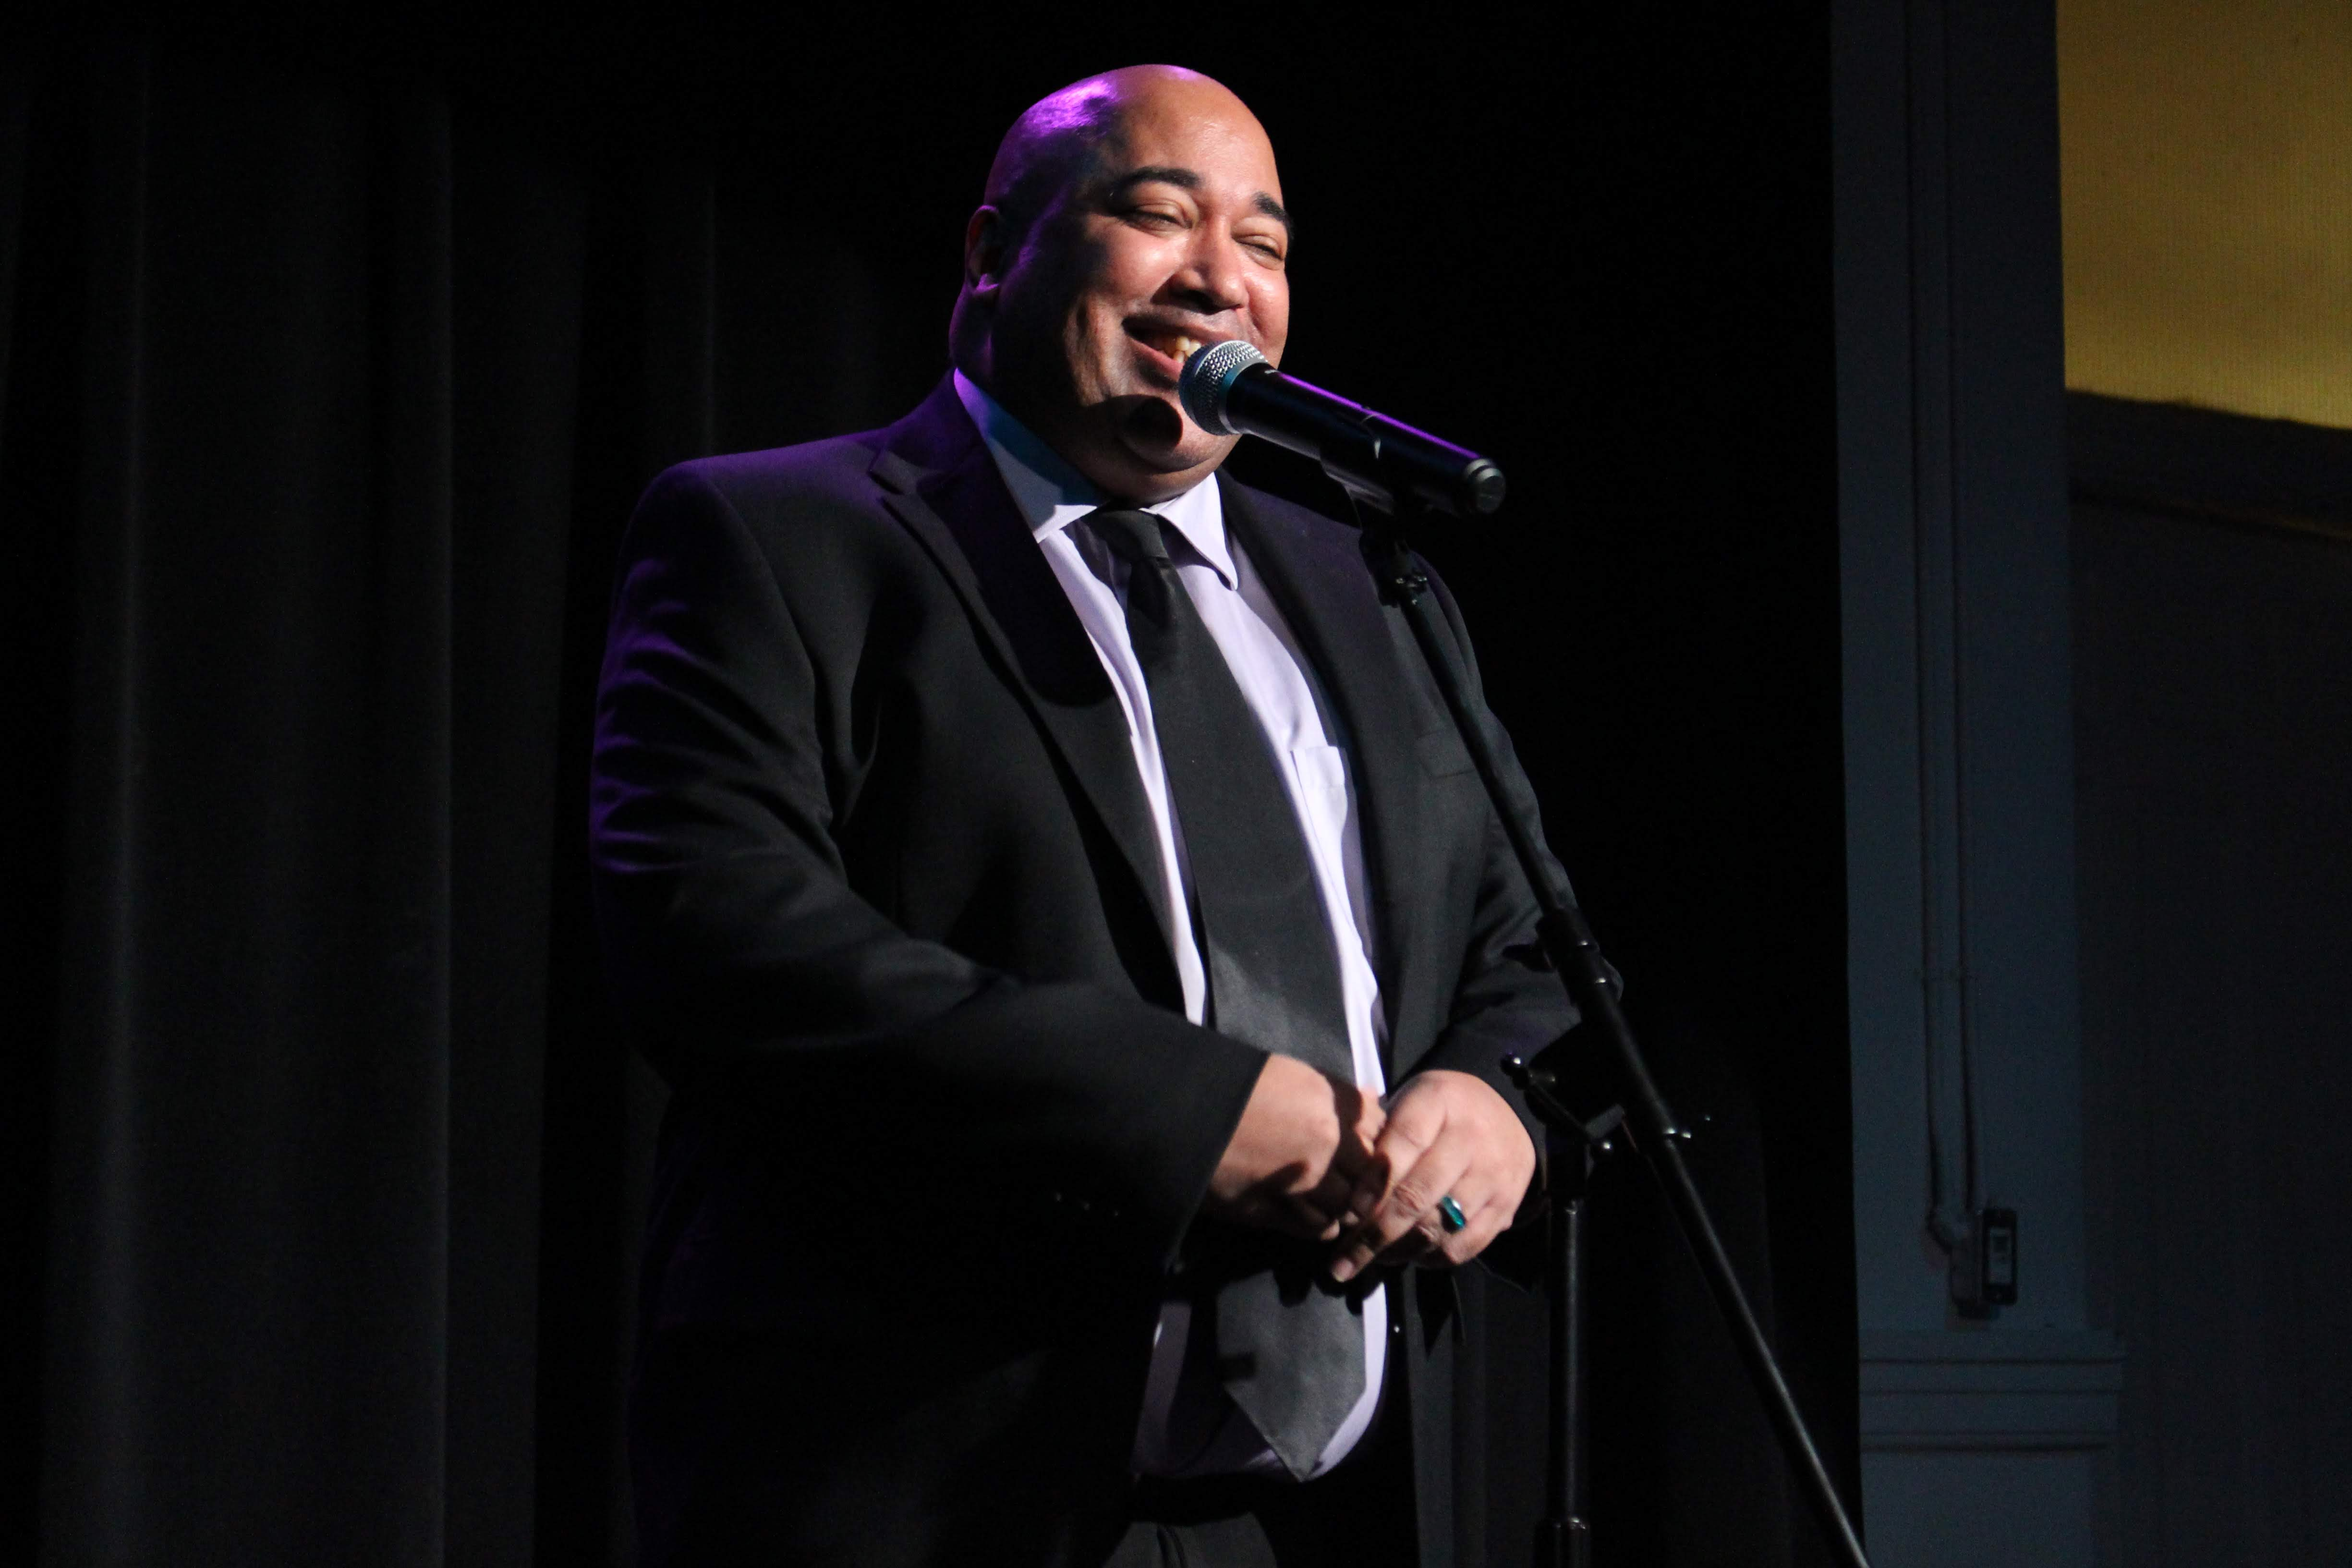 Velvet Wells Mirth photo: Krissia Valiente An image of Velvet Wells, a Black man in a black suit, smiling into a microphone. Black curtains are behind him, a purple light shines on his head and shoulders.